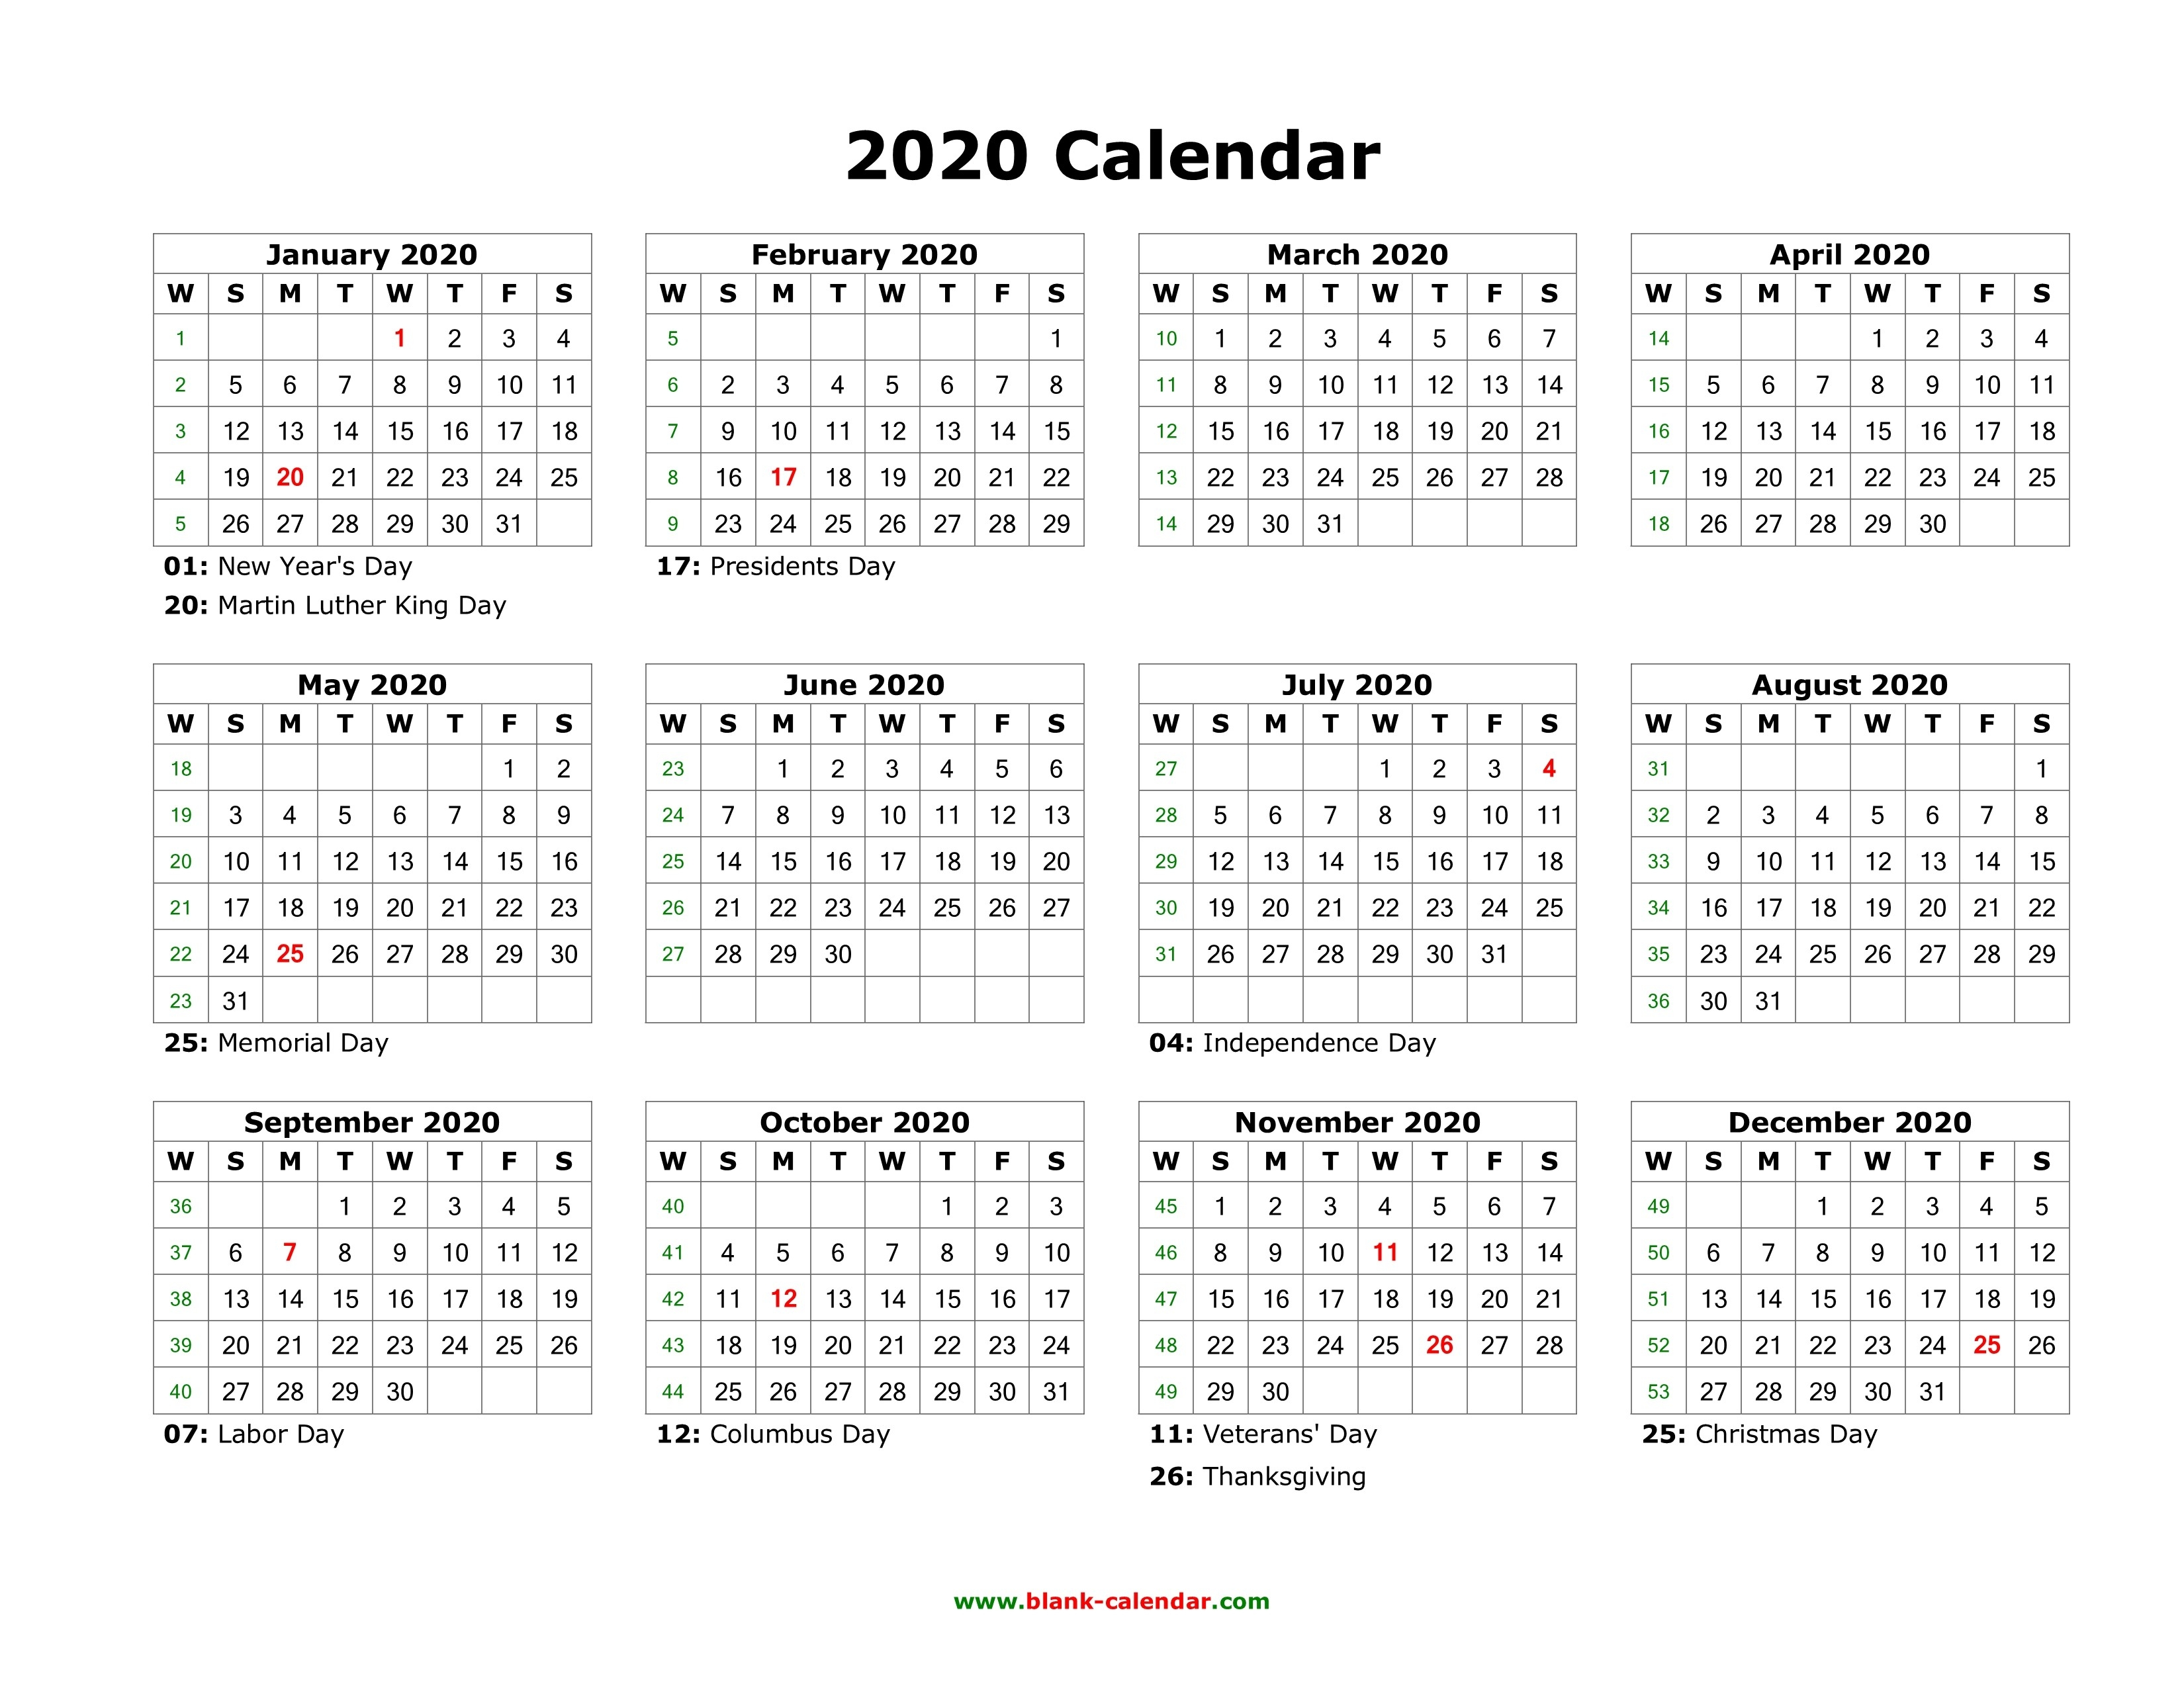 Blank Calendar 2020 | Free Download Calendar Templates-Does Indesign Have A 2020 Calendar Template